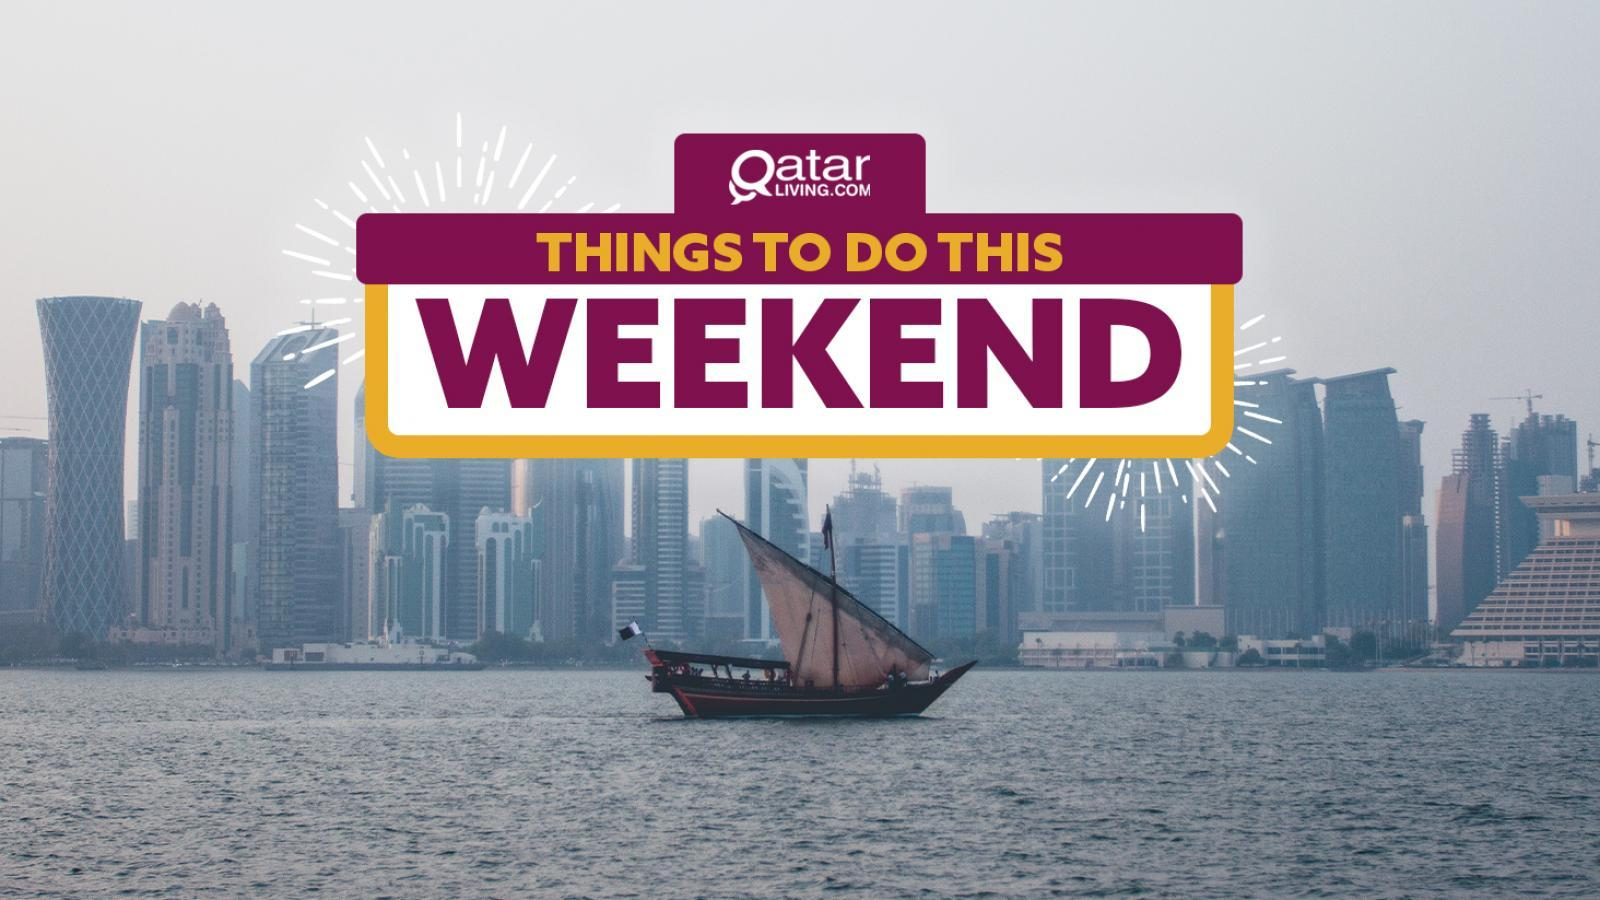 Five things to do in Qatar this weekend: November 5-7